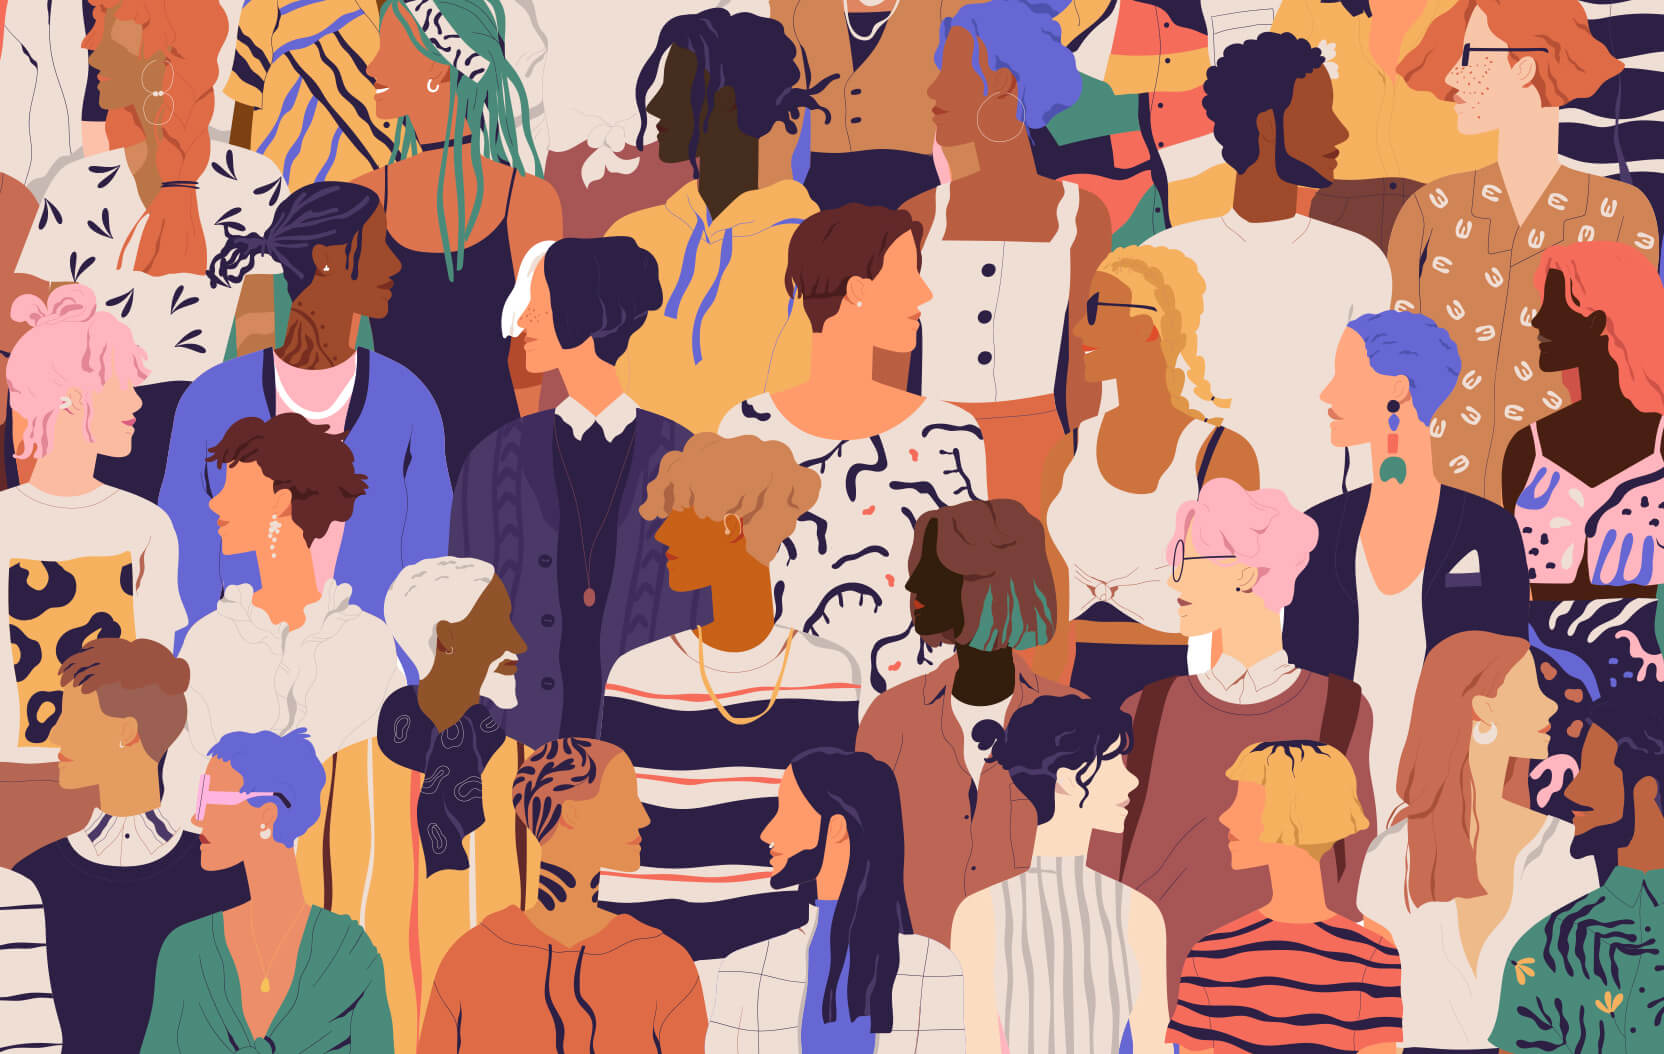 Illustration of a diverse group of people in a crowd.